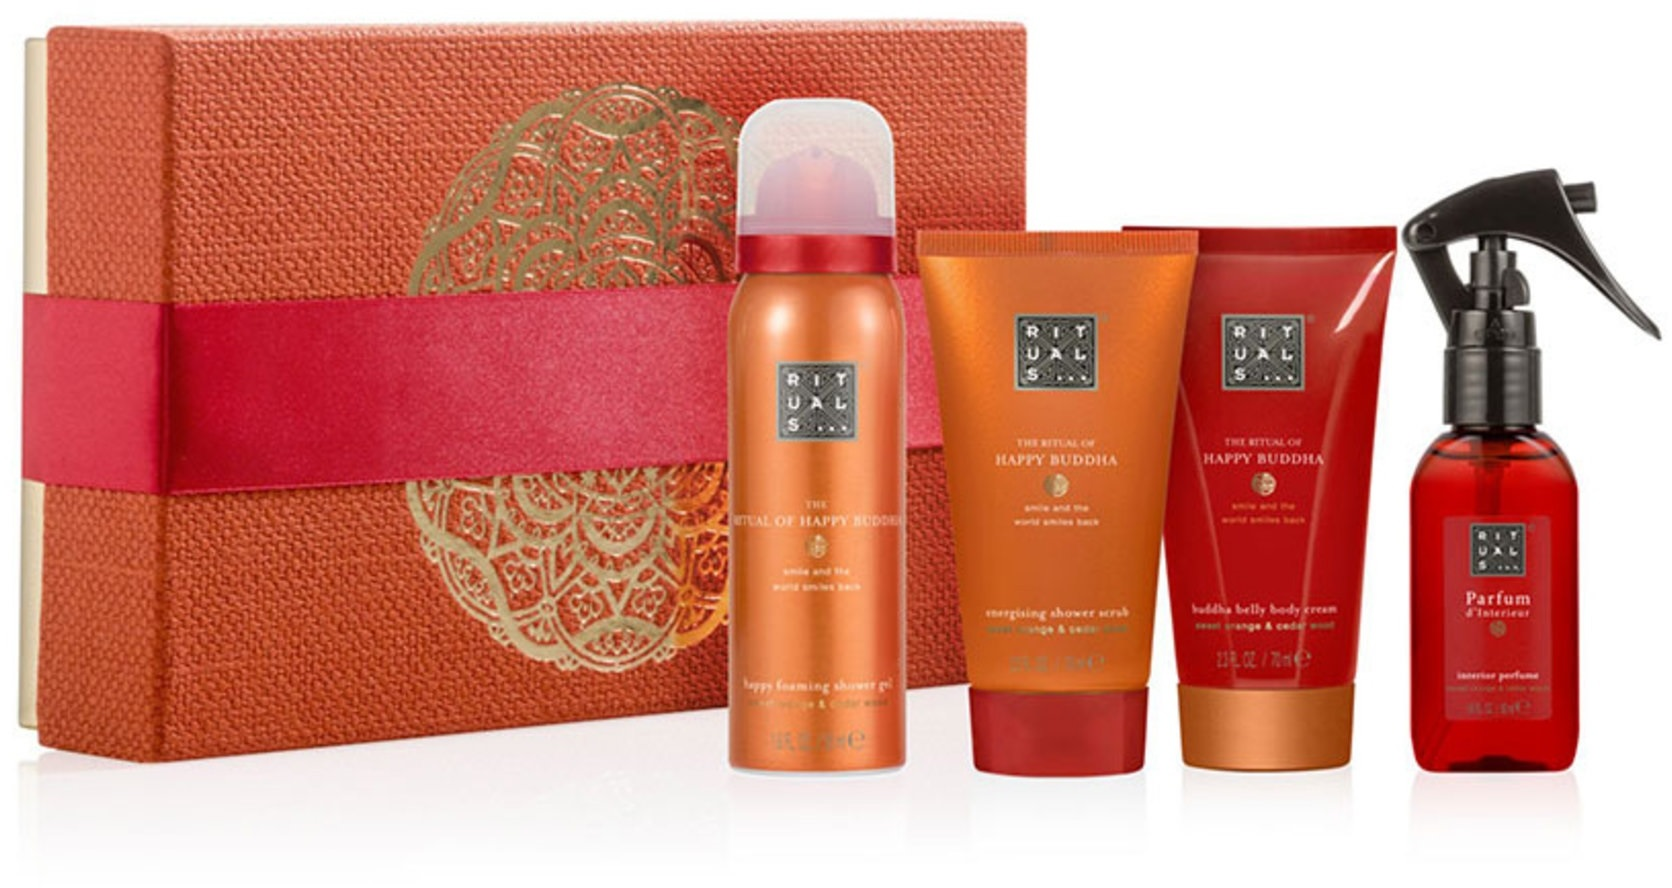 Parfum D'intérieur Rituals Rituals The Ritual Of Happy Buddha Energising Treat Small Gift Set